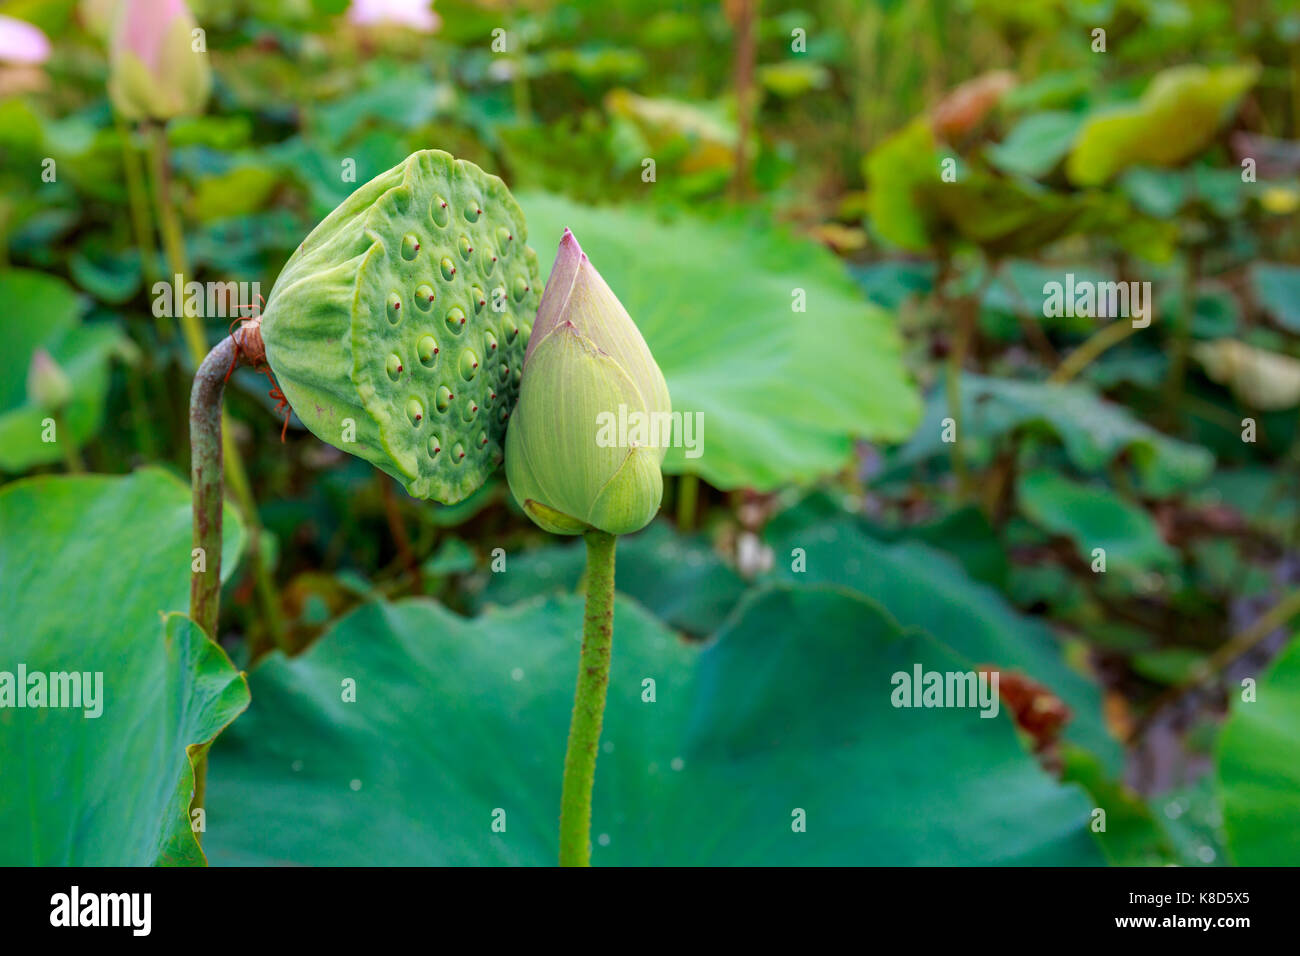 Amazing Lotus Fruit And Lotus Flower Kissing In A Quiet Tropical